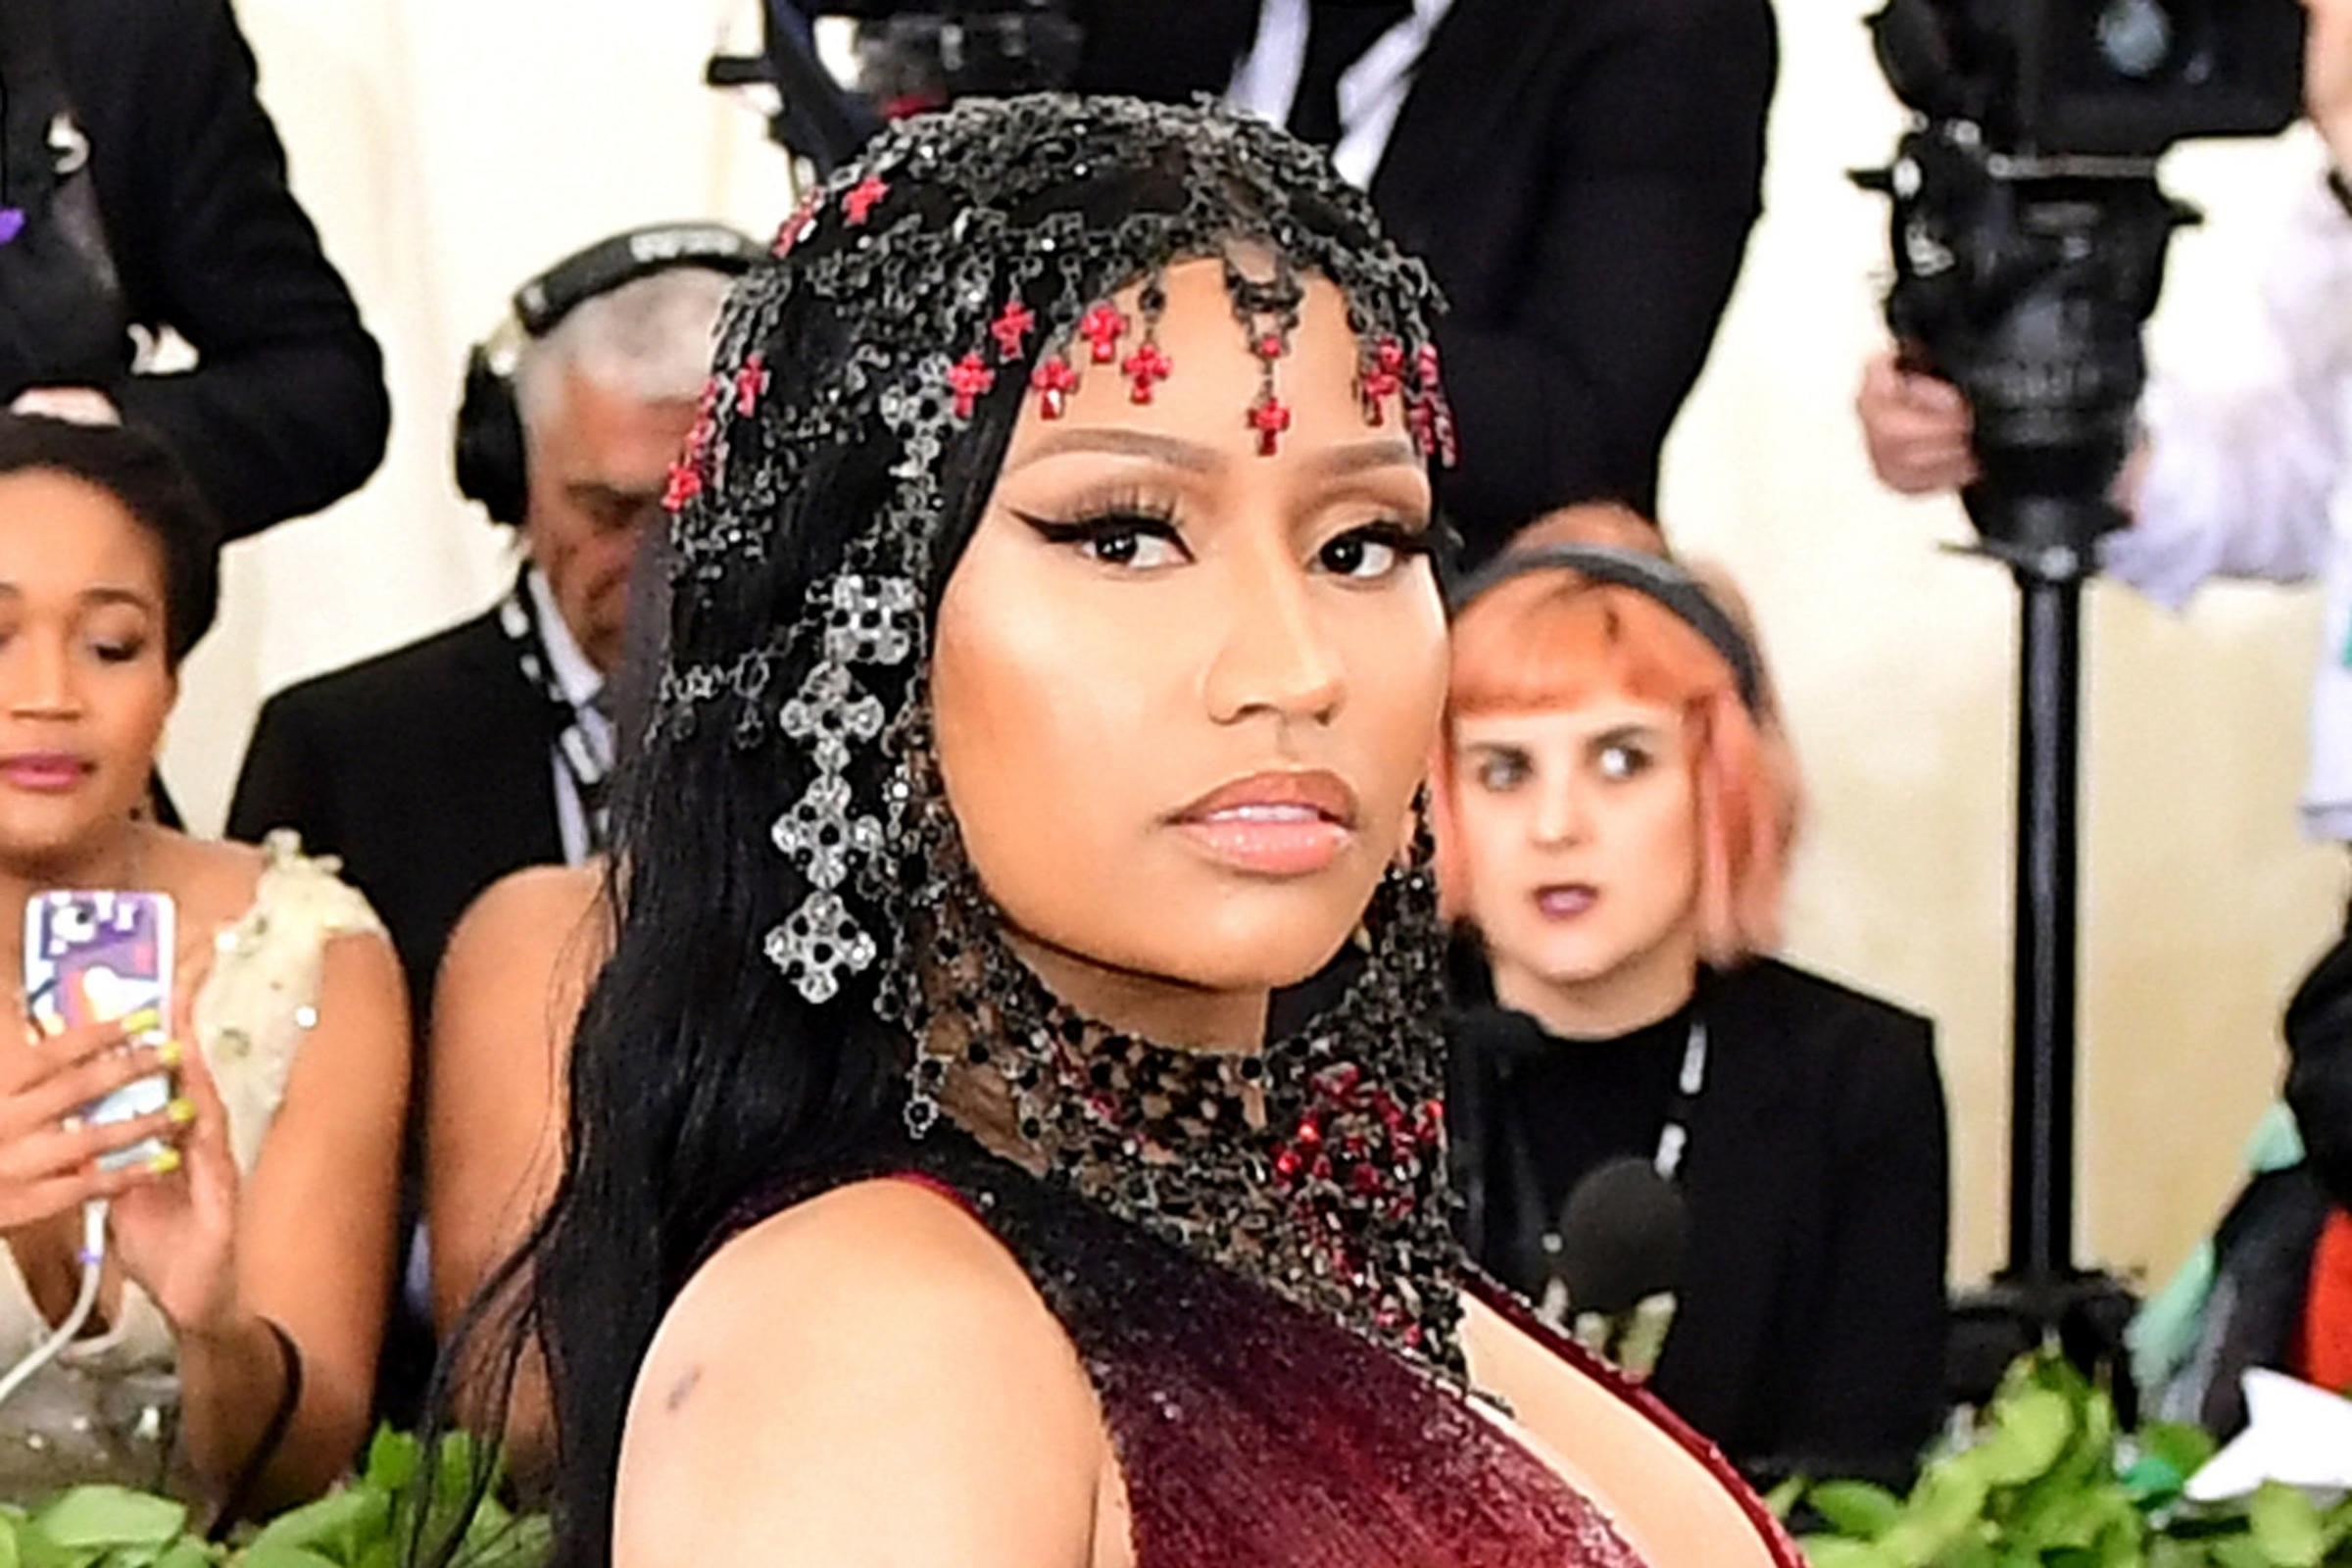 Nicki Minaj at the Met gala